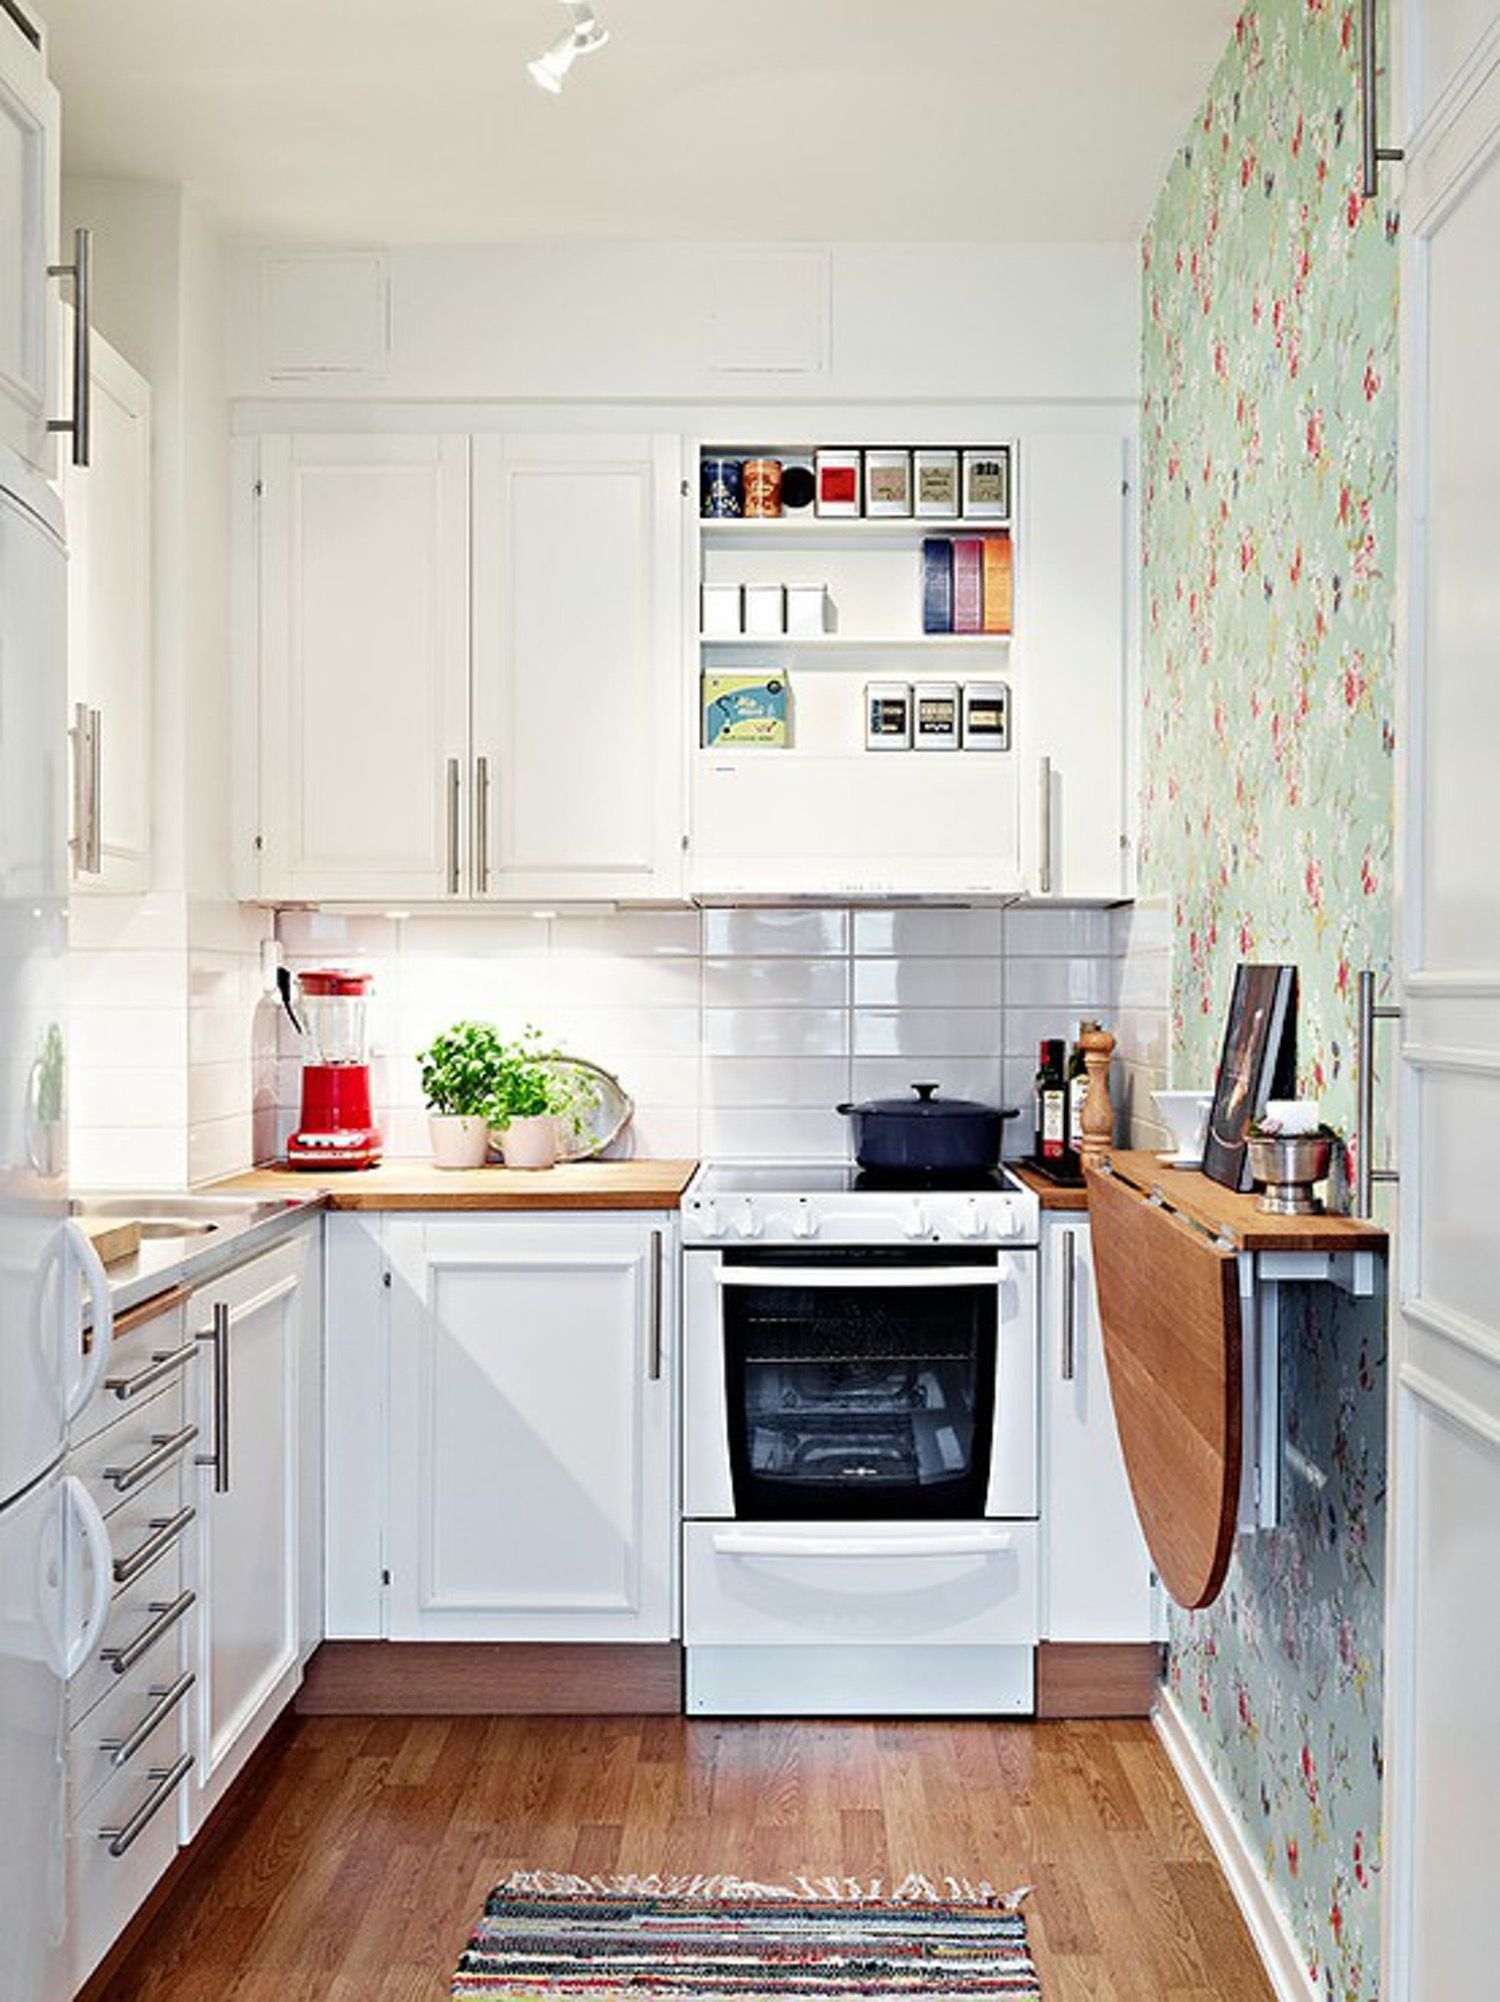 Genius kitchens space saving details for small kitchens kitchens